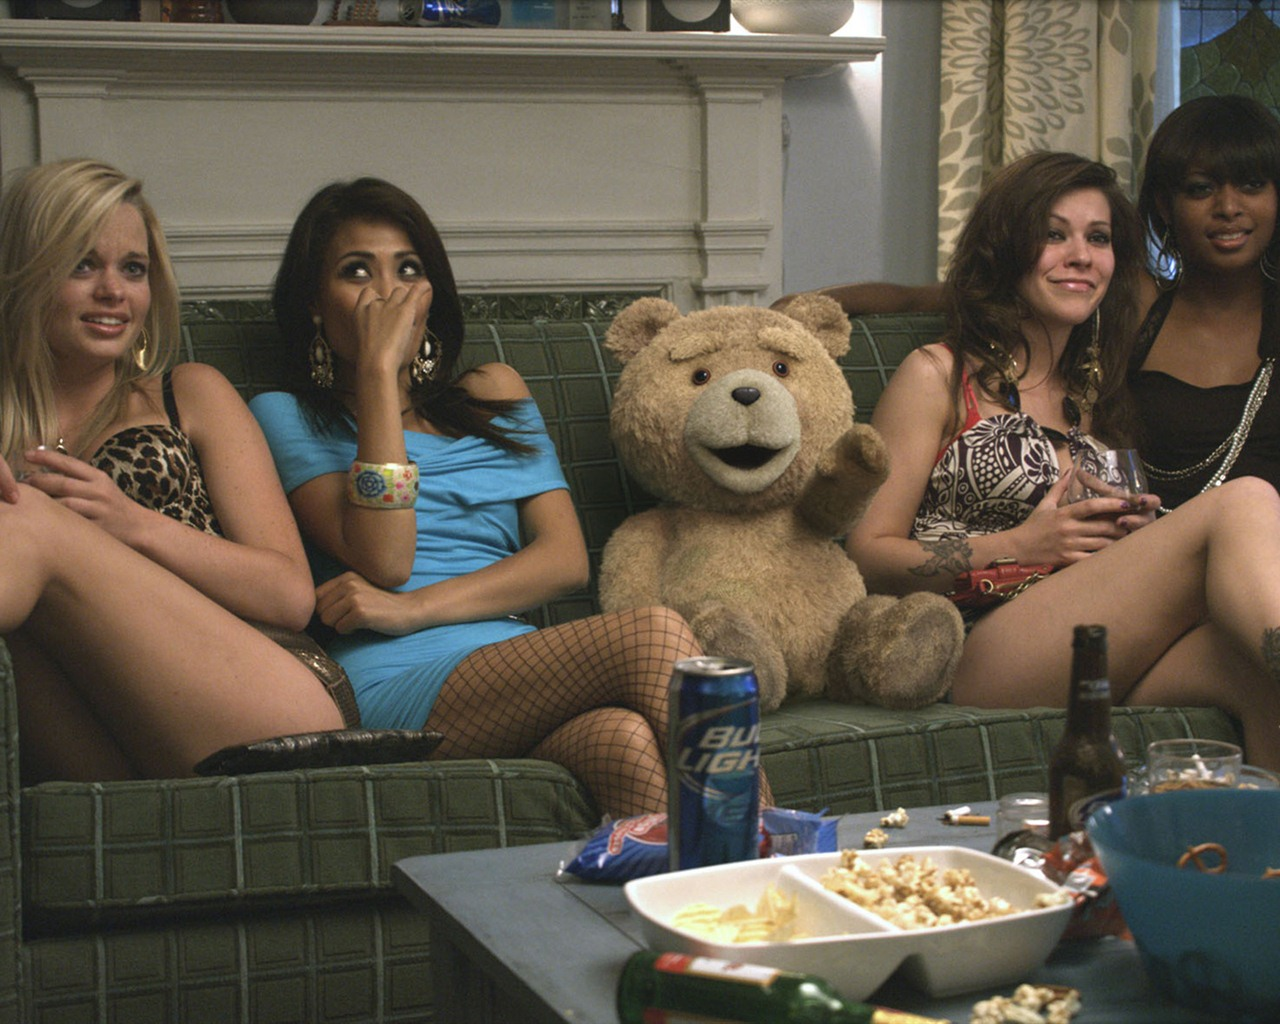 ted 2012 hd movie wallpapers #6 - 1280x1024 wallpaper download - ted